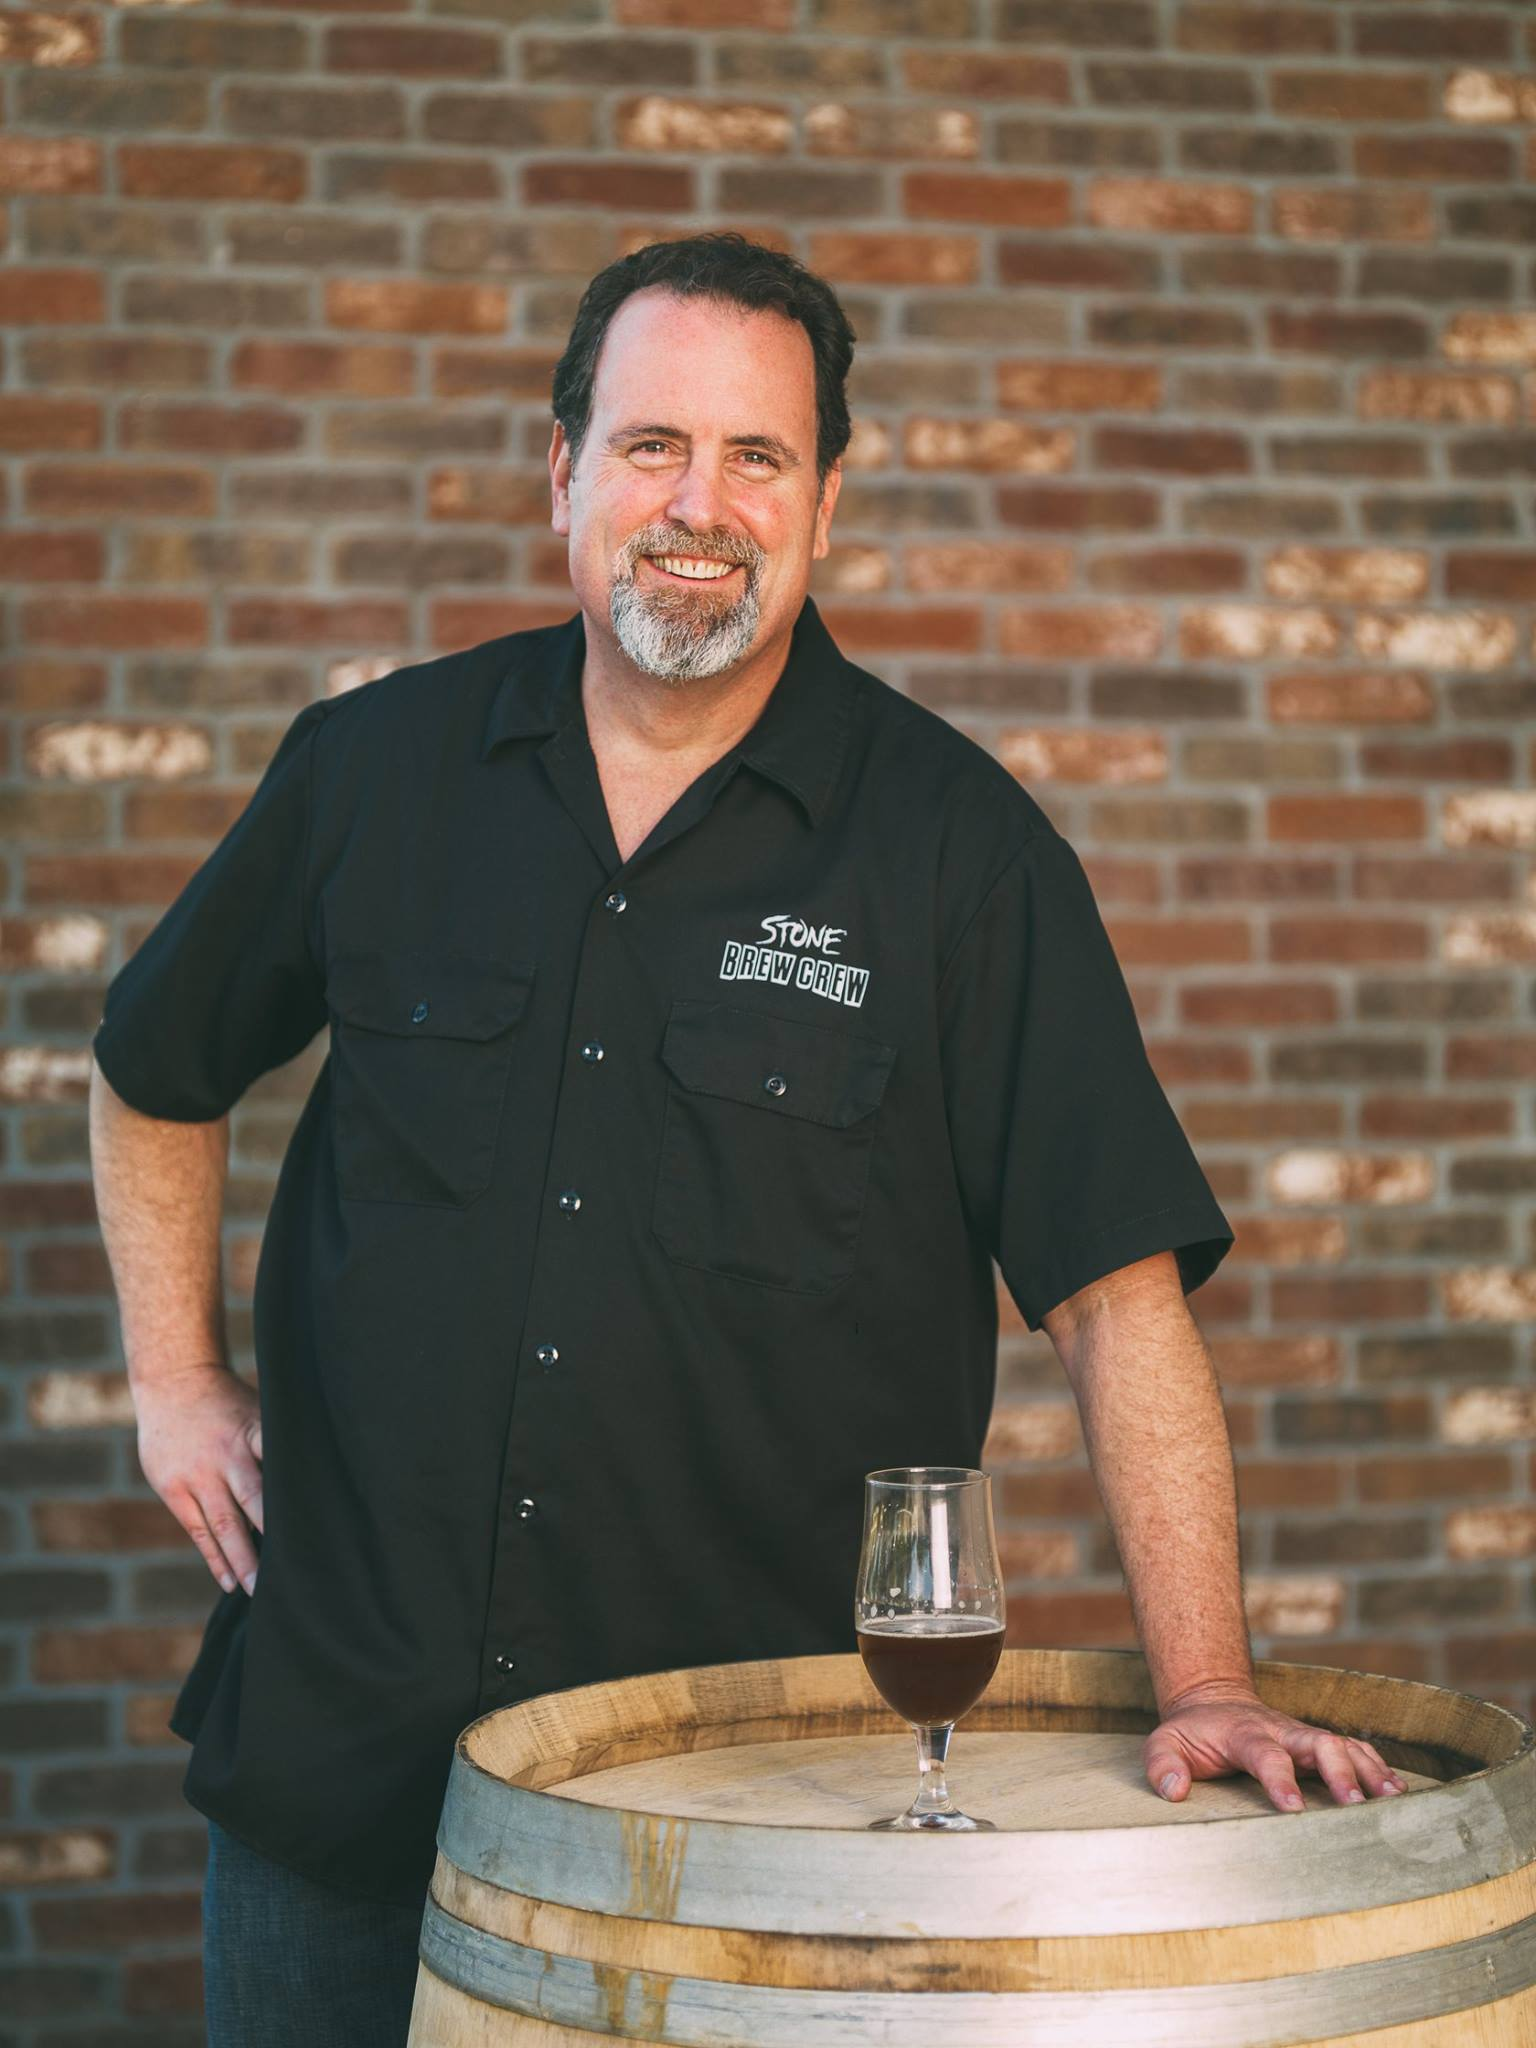 Former Stone Brewing Brewmaster Mitch Steele will open his new brewing project in Atlanta, Georgia. Former Stone Brewing Brewmaster Mitch Steele will open his new brewing project in Atlanta, Georgia.